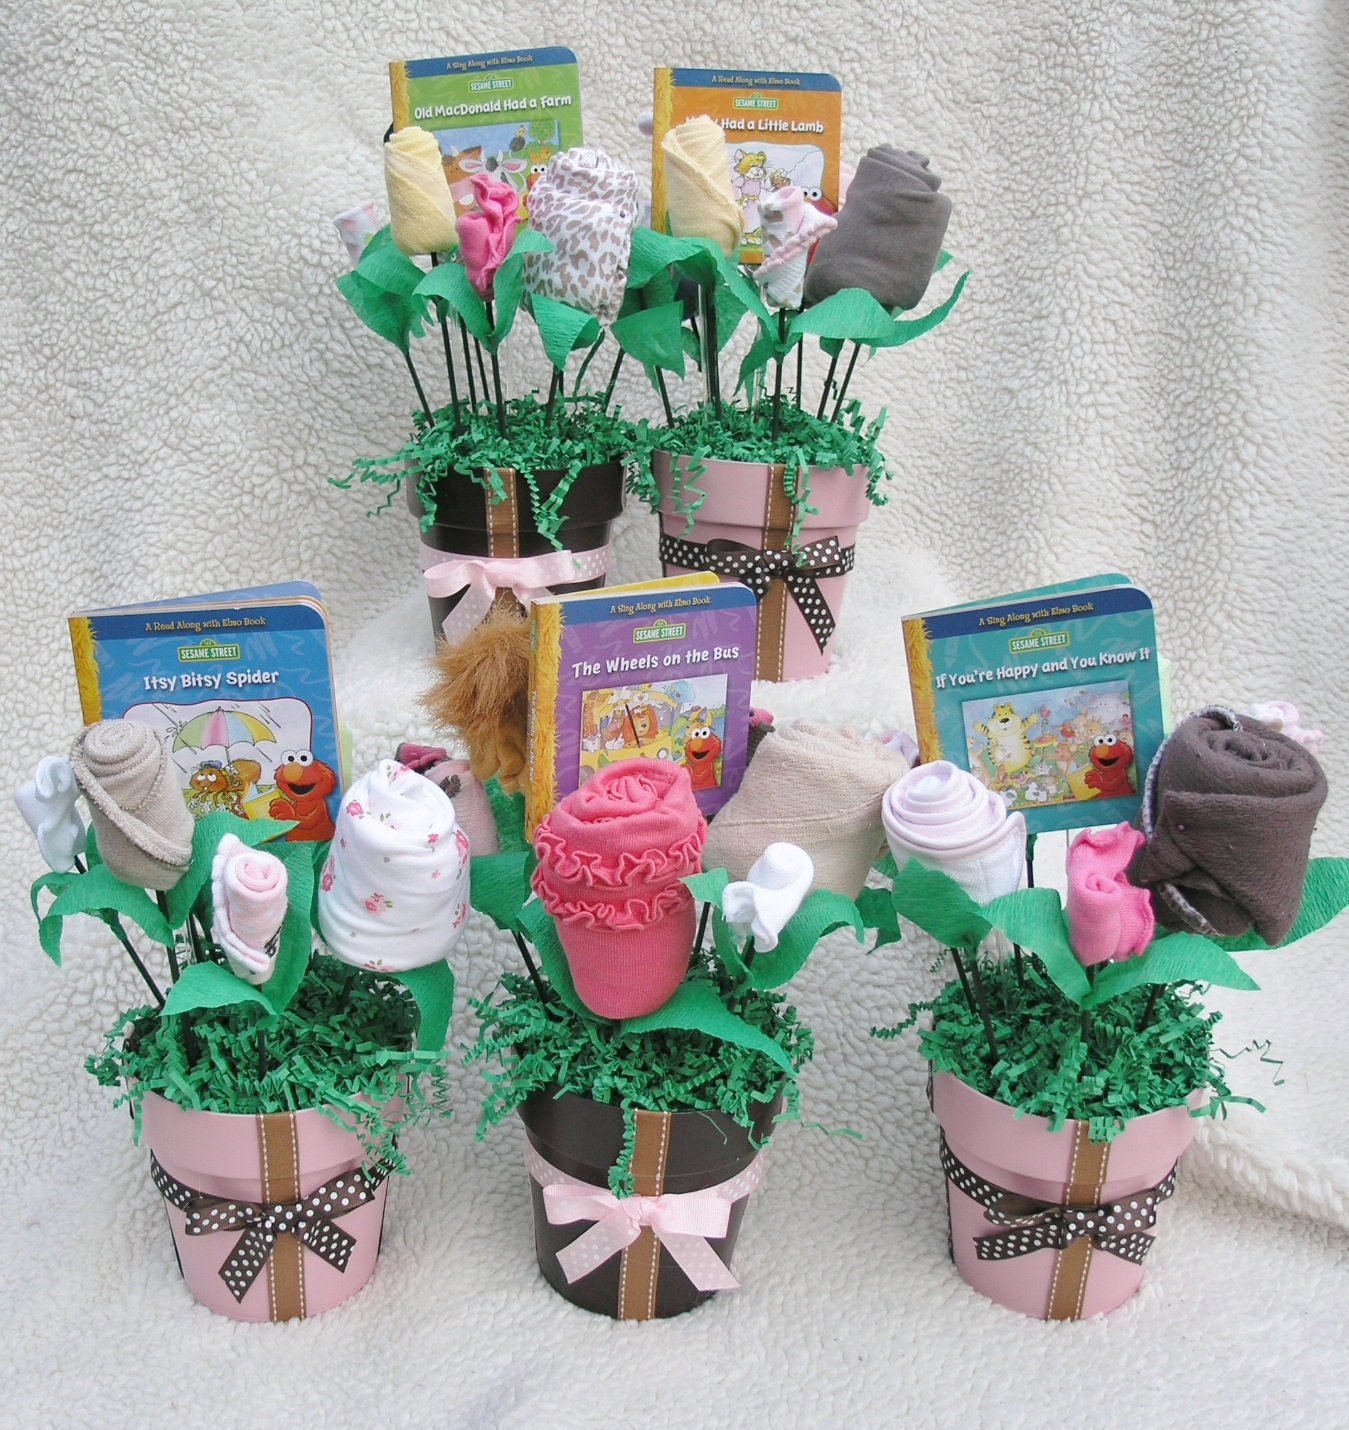 Baby Shower Centerpieces Homemade: Baby Shower Centerpieces Ideas For Girls